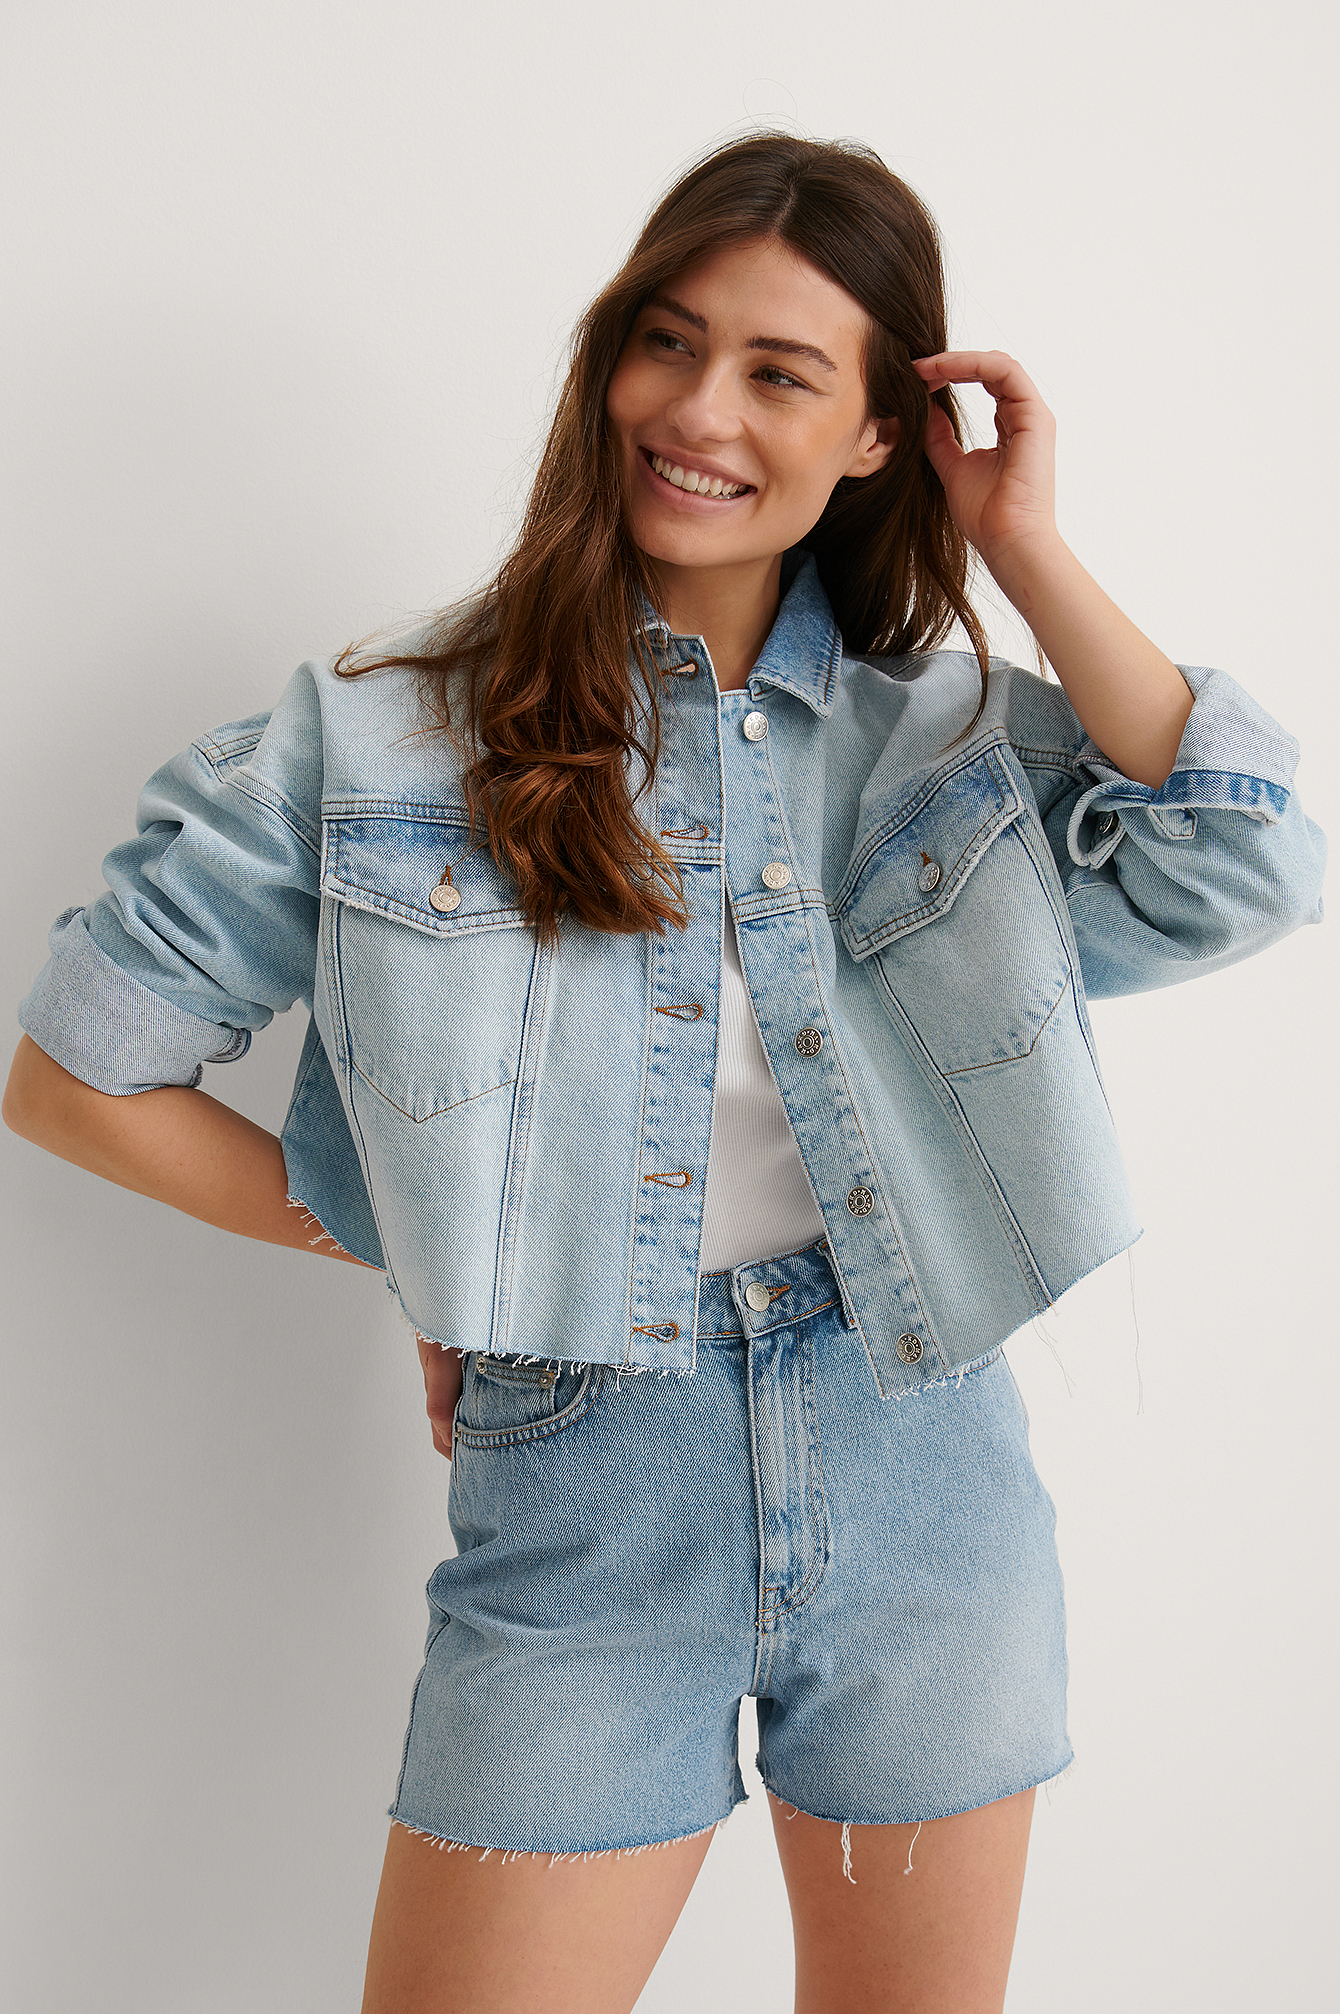 Light Blue Biologique Veste En Denim À Ourlet Brut